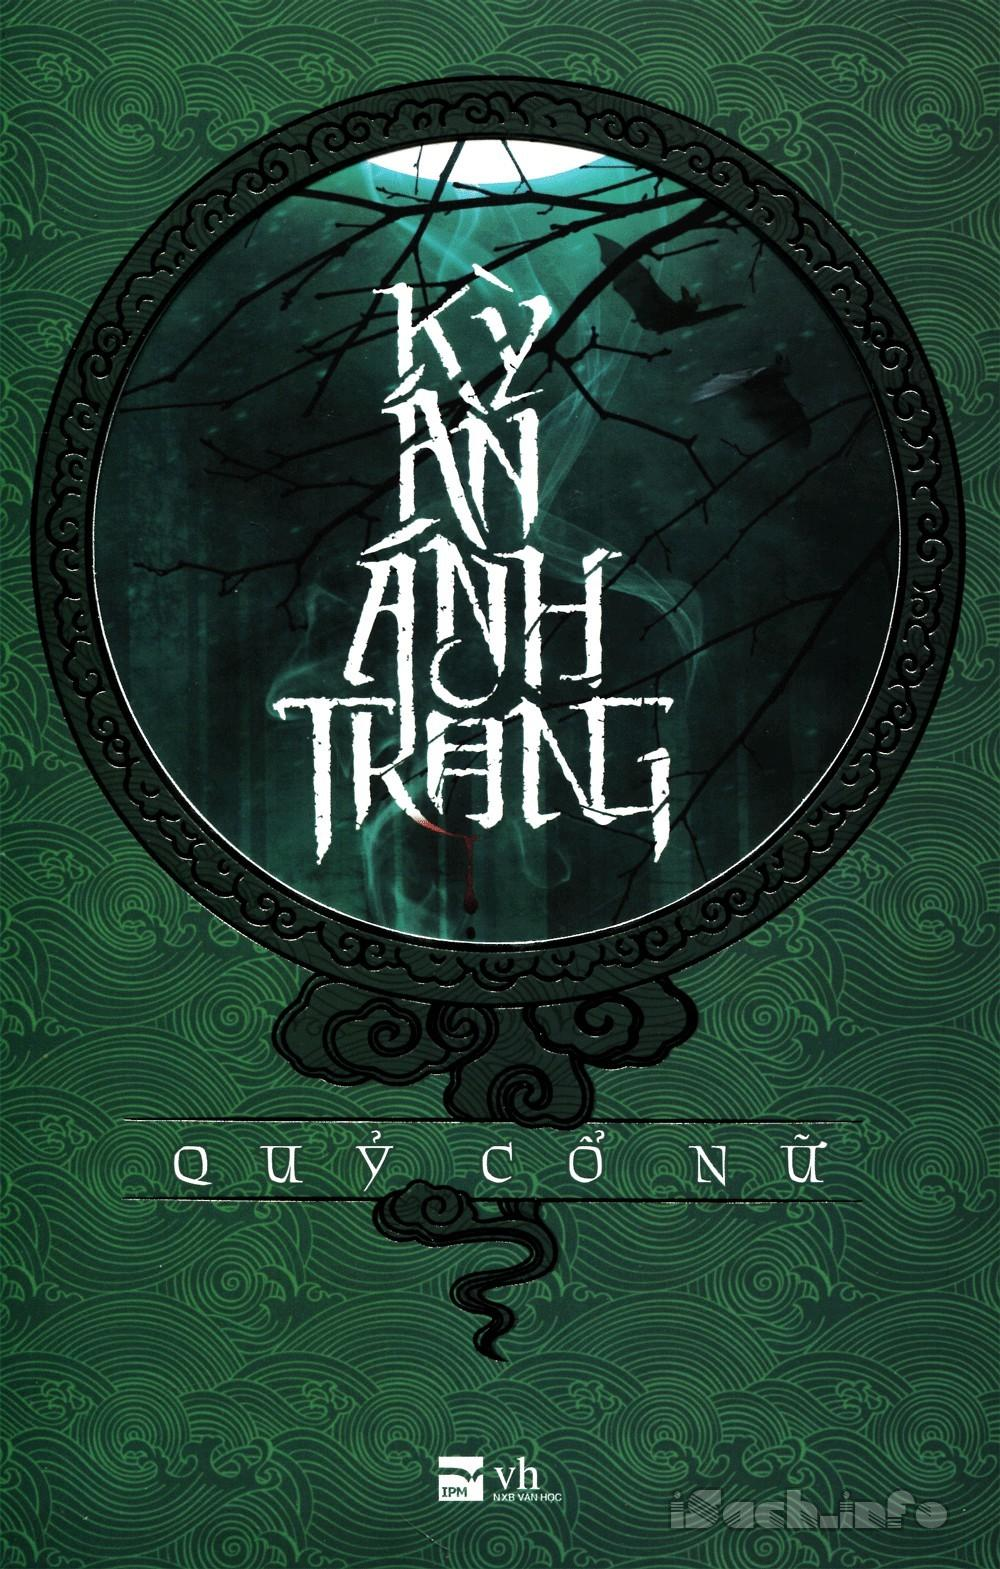 ky_an_anh_trang__quy_co_nu